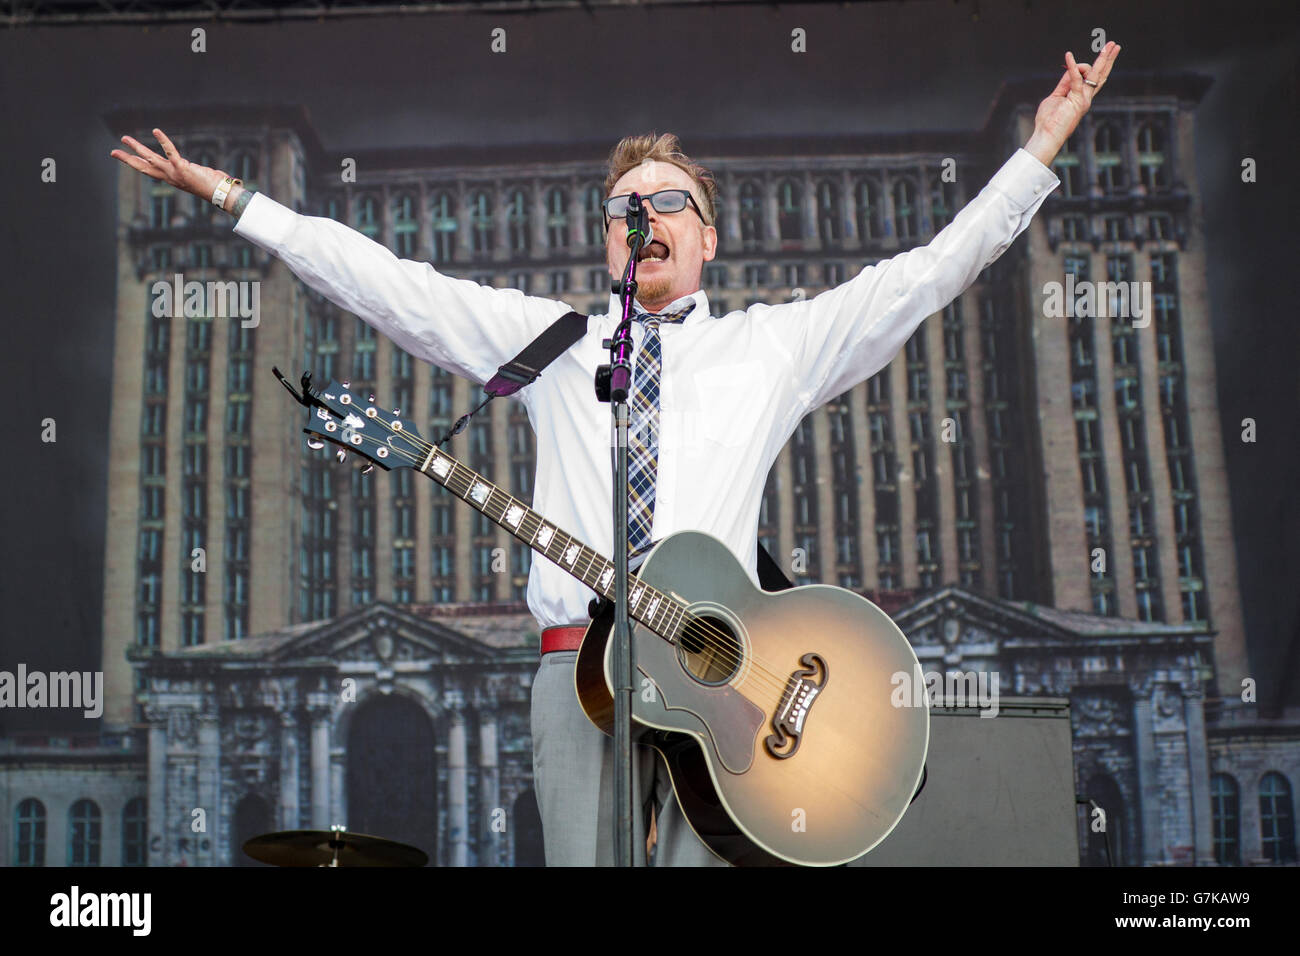 Rho Italy. 15th June 2011. The Irish-American band FLOGGING MOLLY performs live at Arena Fiera di Milano during - Stock Image